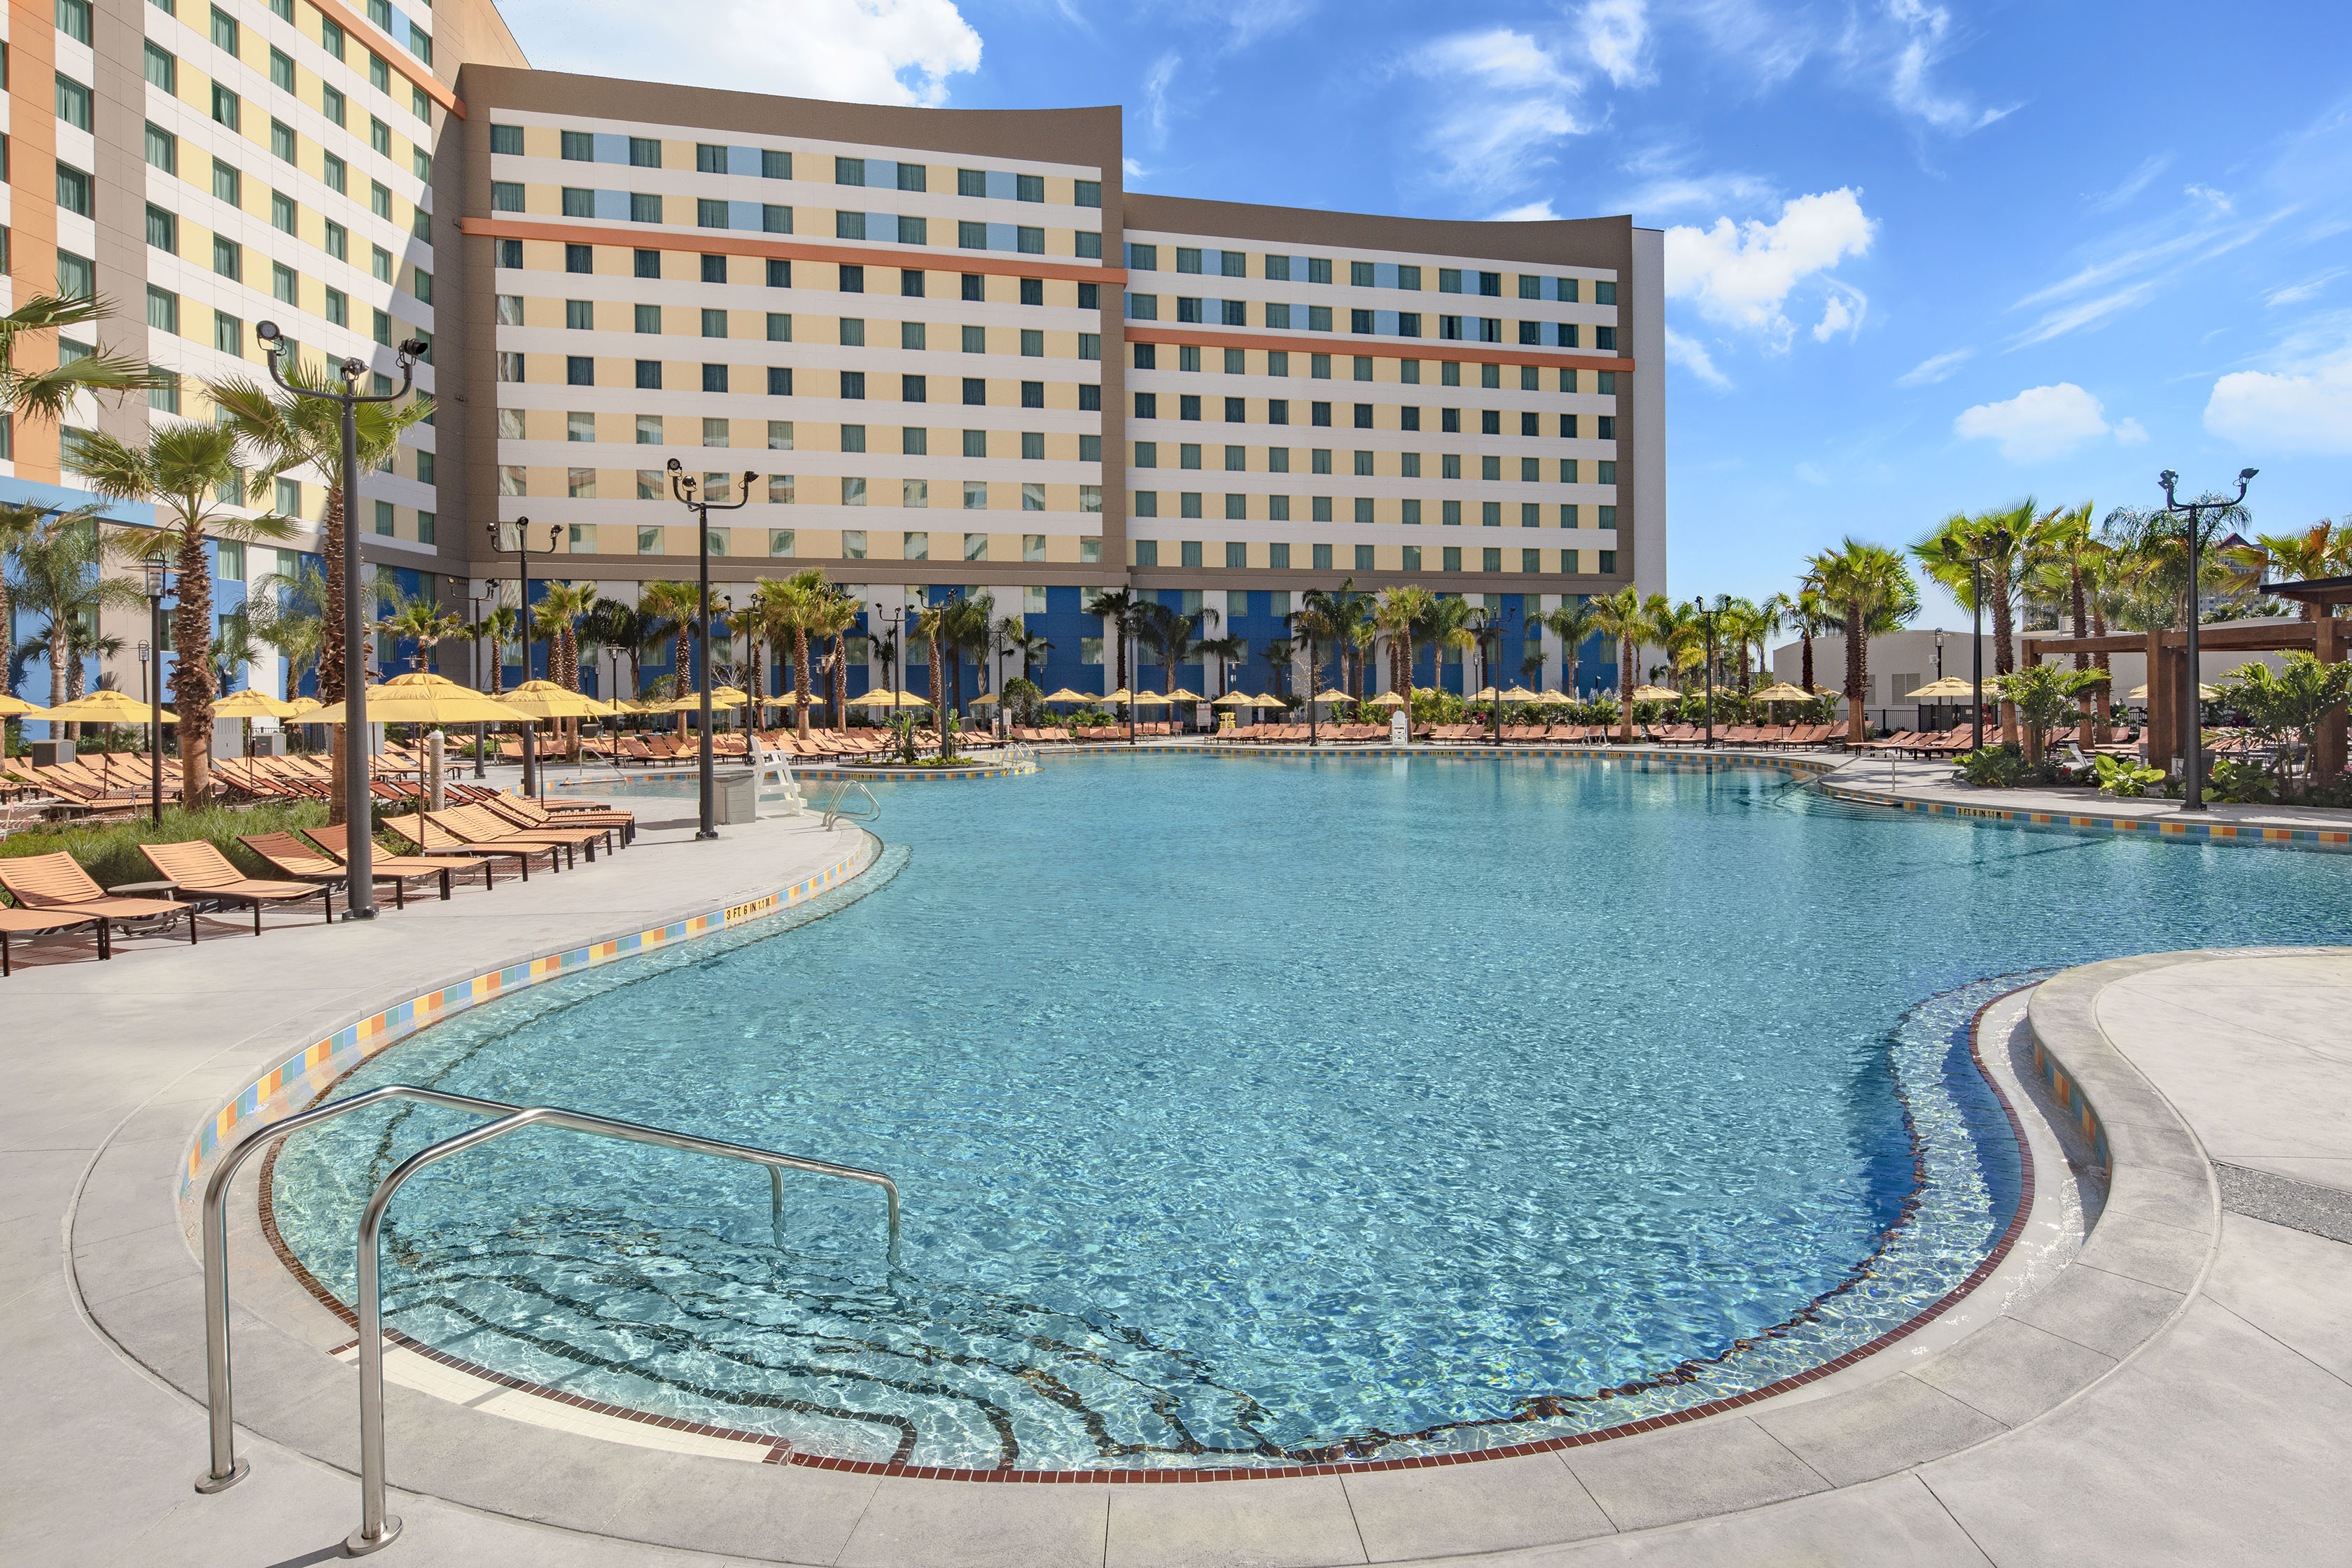 Universal's Endless Summer Resort - Dockside Inn and Suites